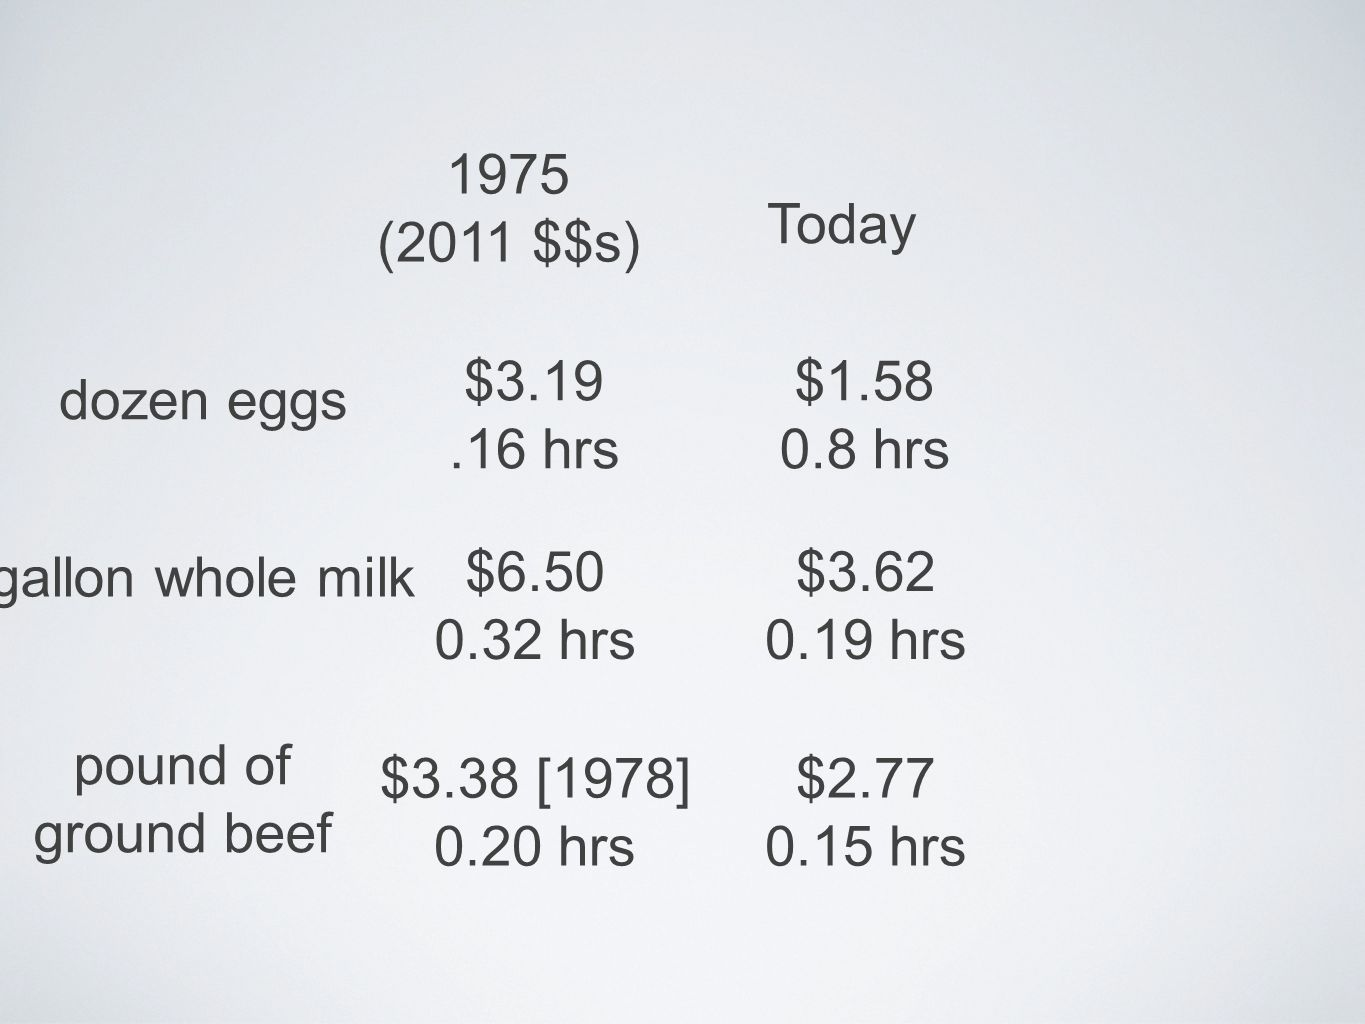 1975 (2011 $$s) Today dozen eggs $3.19.16 hrs $1.58 0.8 hrs $6.50 0.32 hrs gallon whole milk $3.62 0.19 hrs pound of ground beef $3.38 [1978] 0.20 hrs